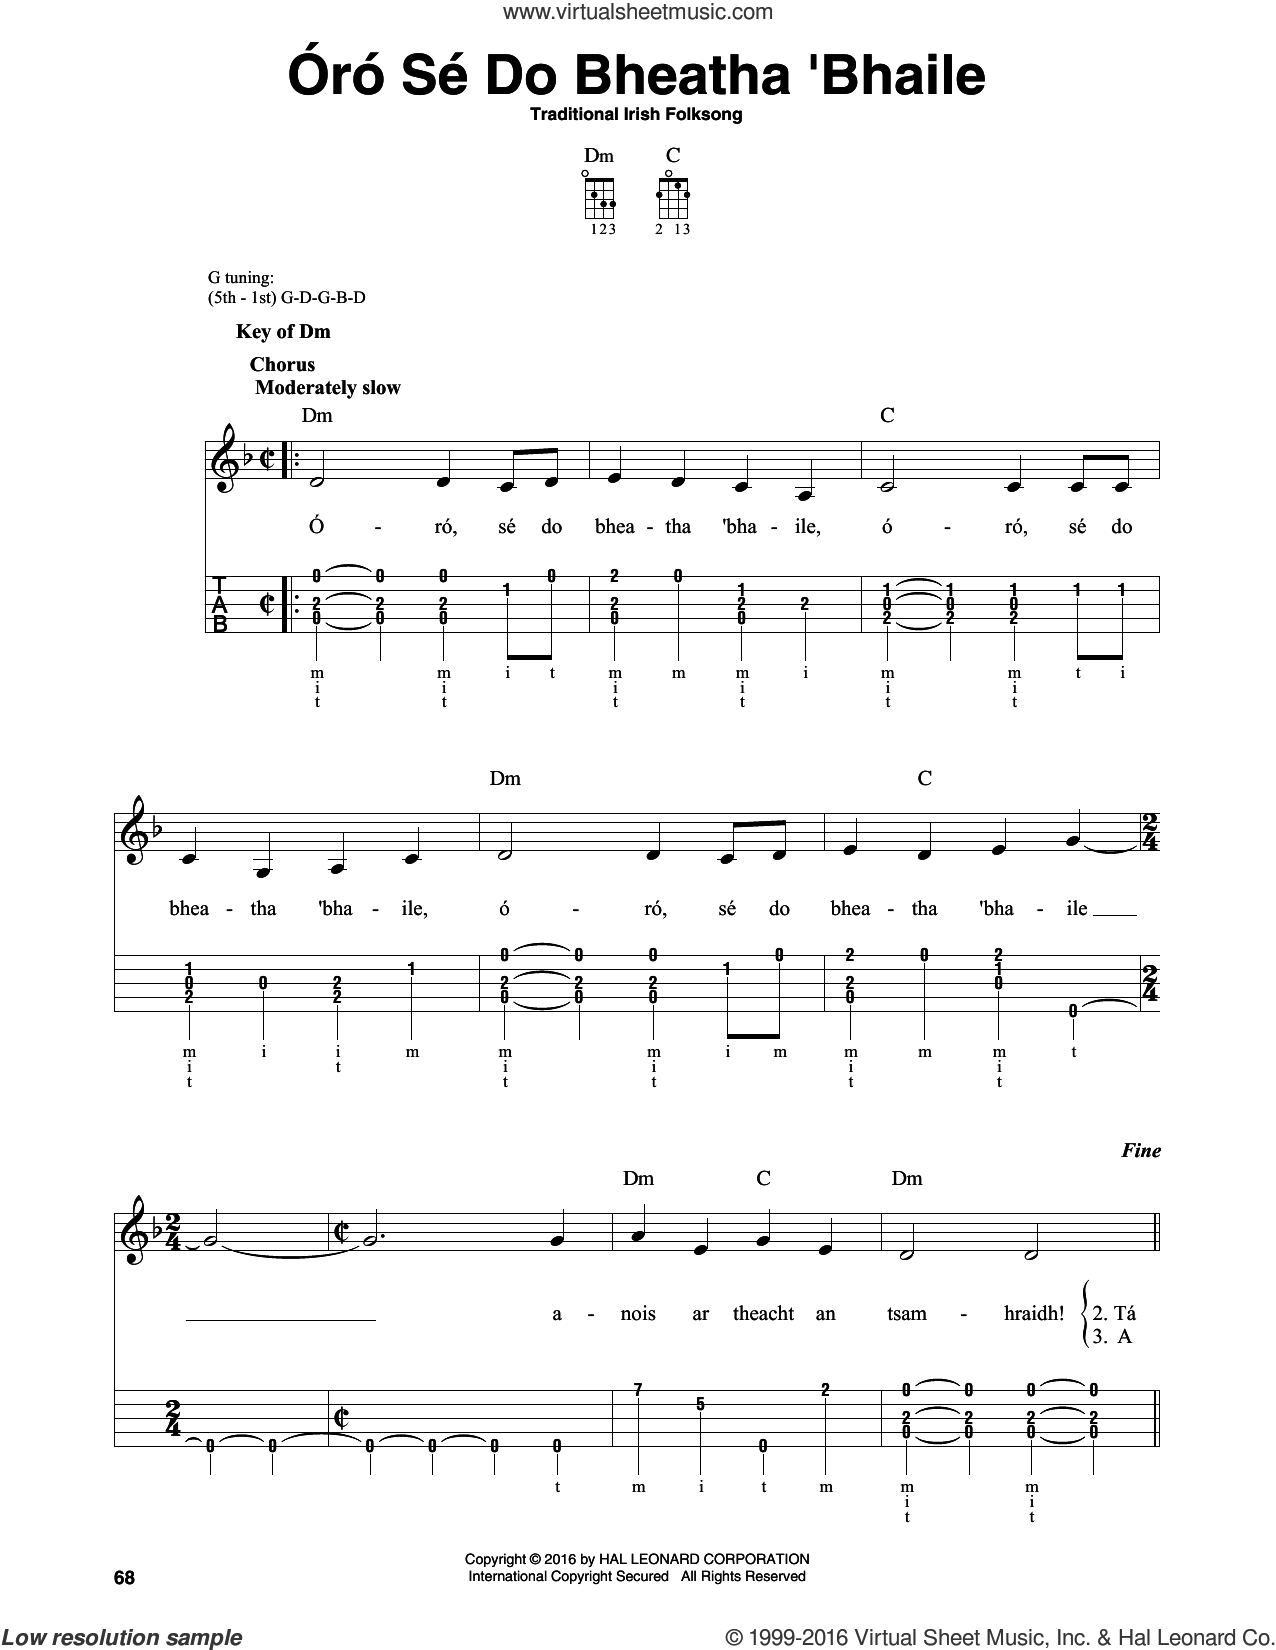 Oro Se Do Bheatha Bhaile sheet music for banjo solo, intermediate skill level